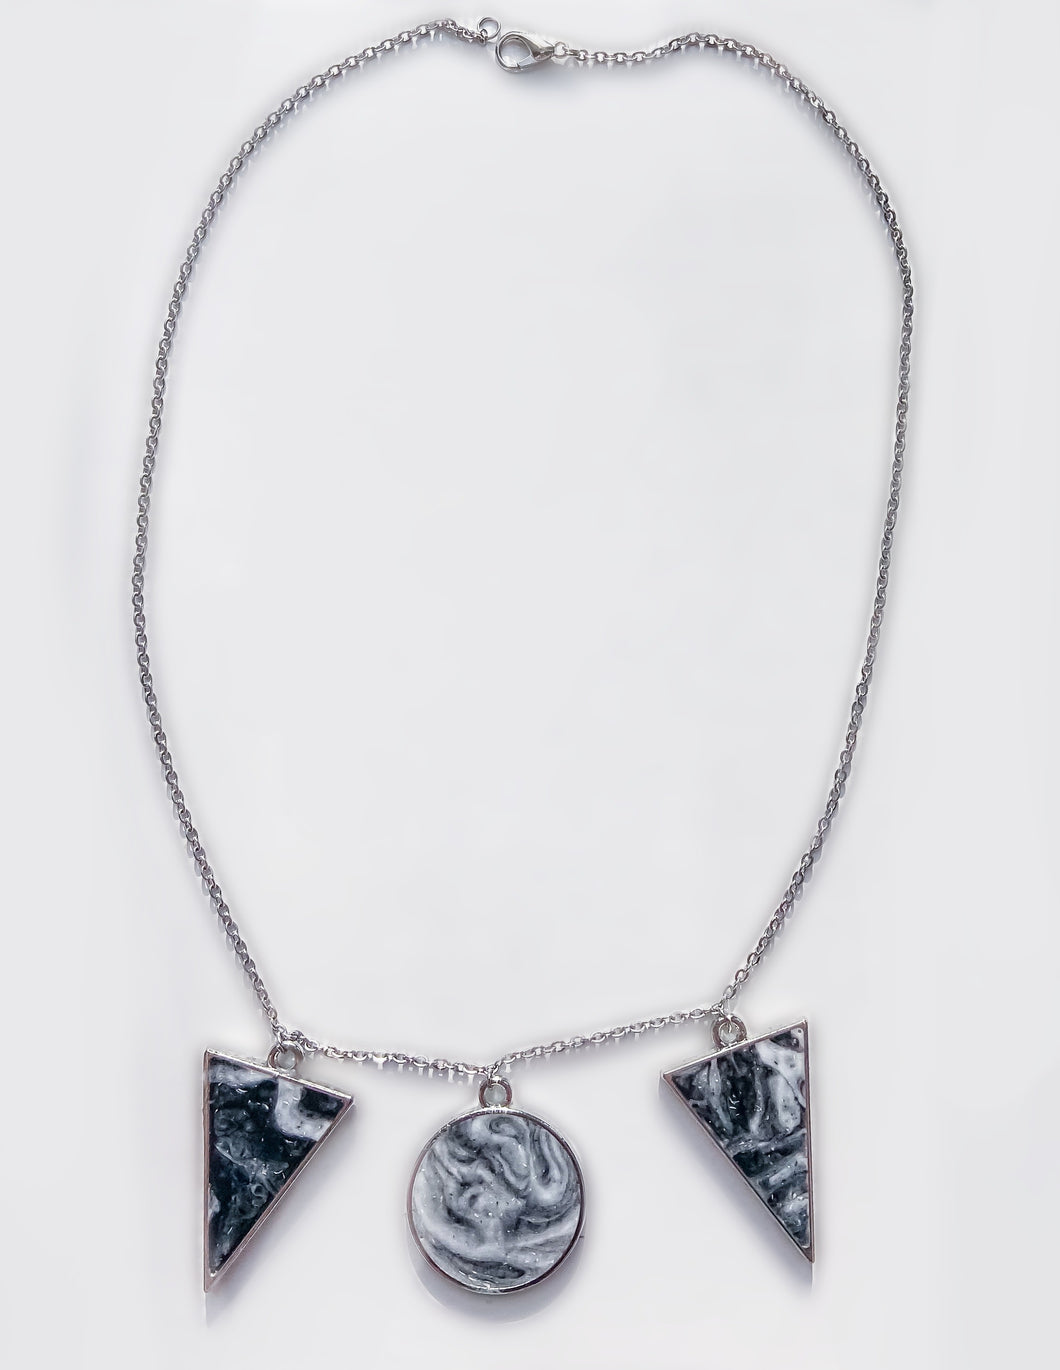 Marble Resin Statement Stainless Steel Necklace